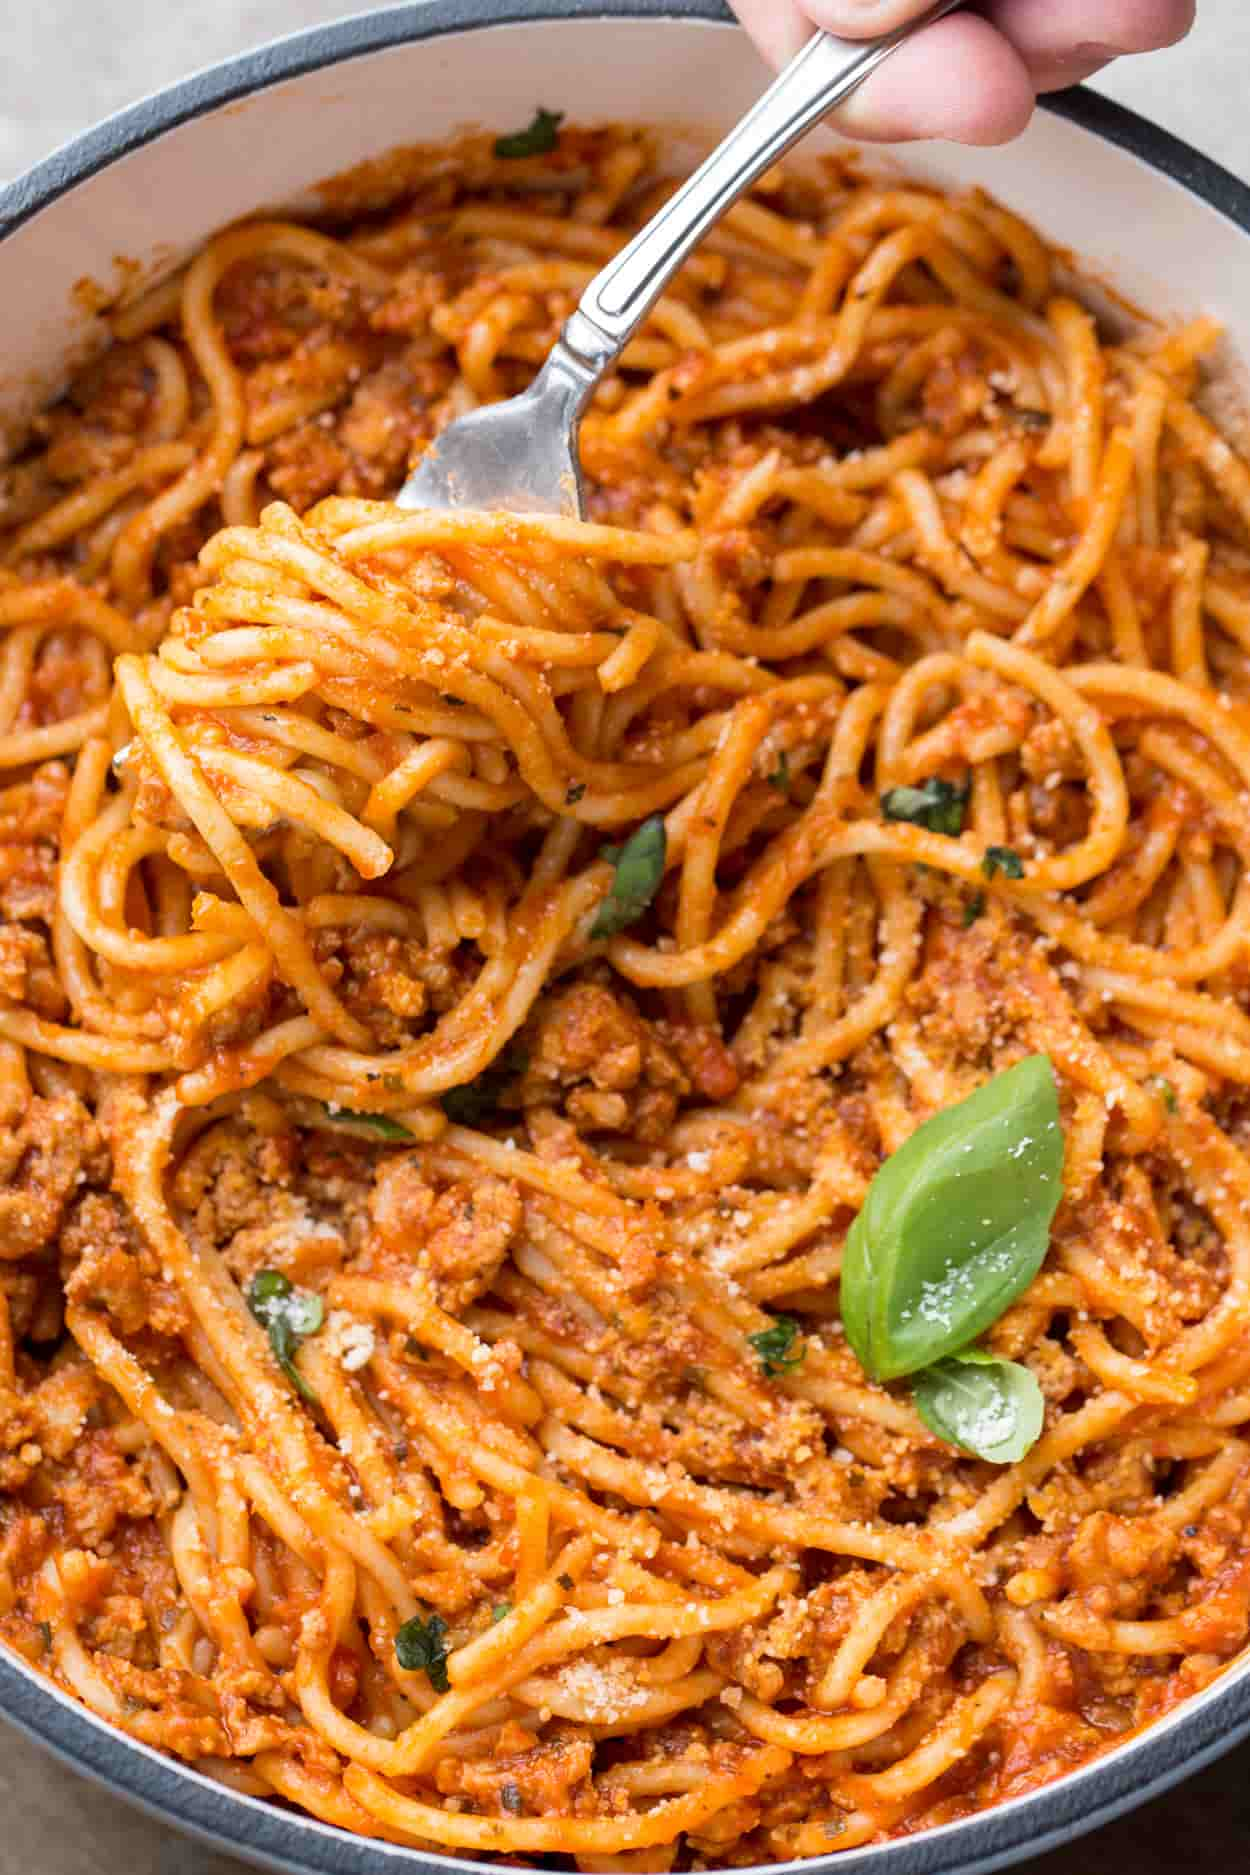 Recipe for how to cook spaghetti. Spaghetti on a fork, topped with Paremsan cheese.